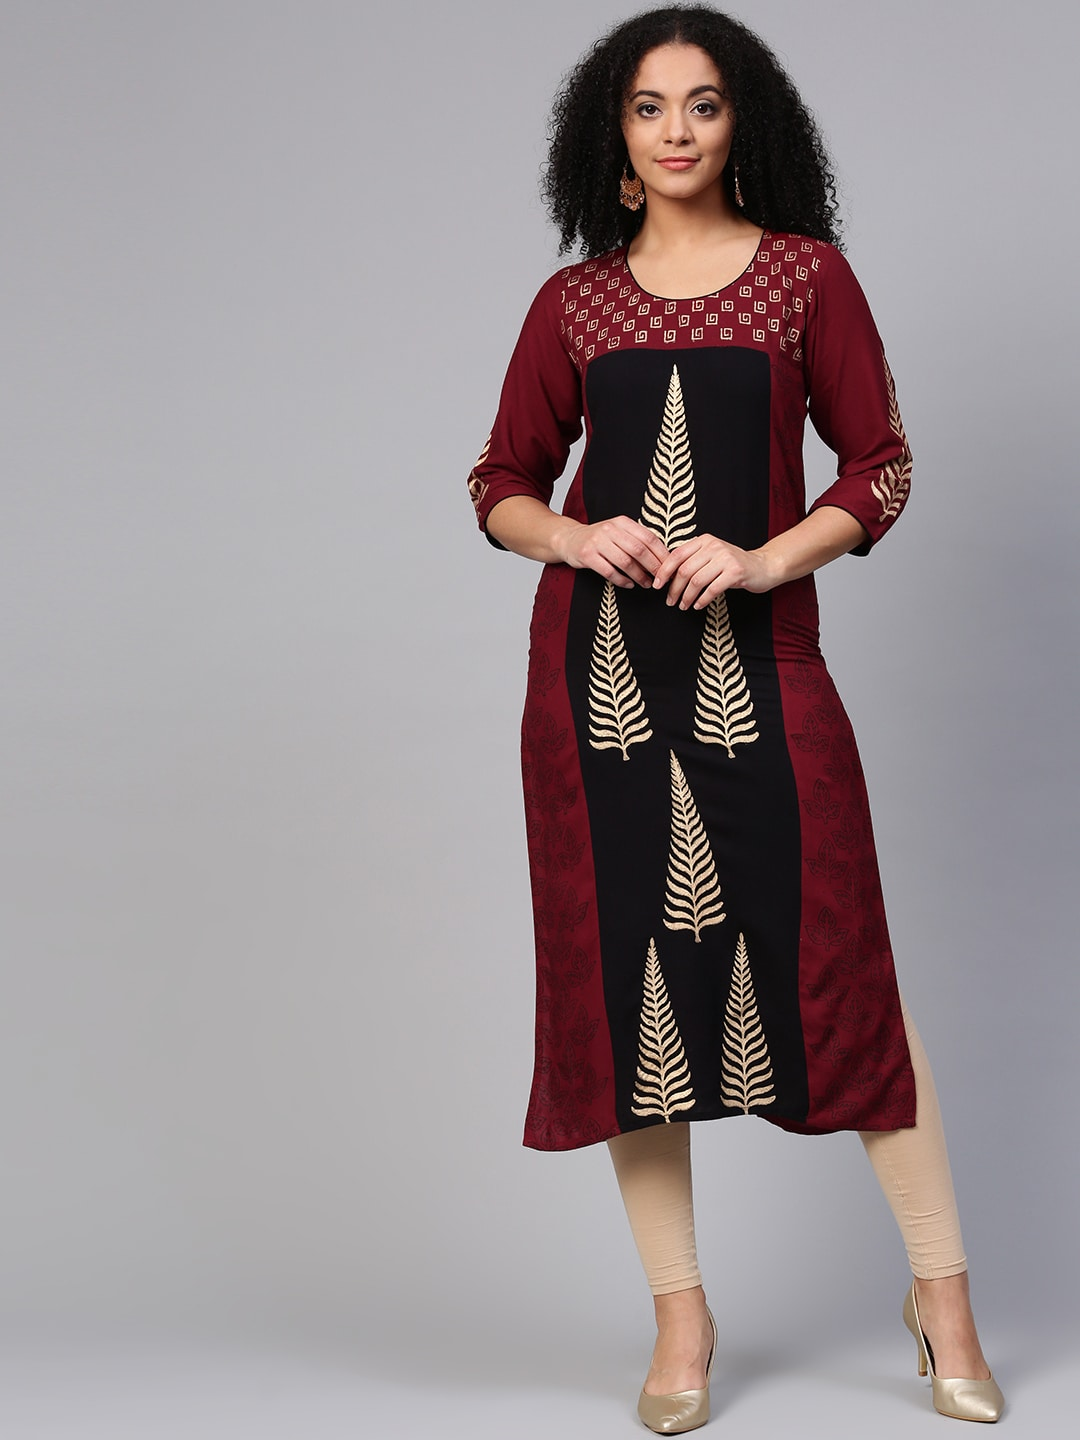 0a613097343 Ethnic Wear Sable For Men   Women - Buy Ethnic Wear Sable For Men   Women  online in India